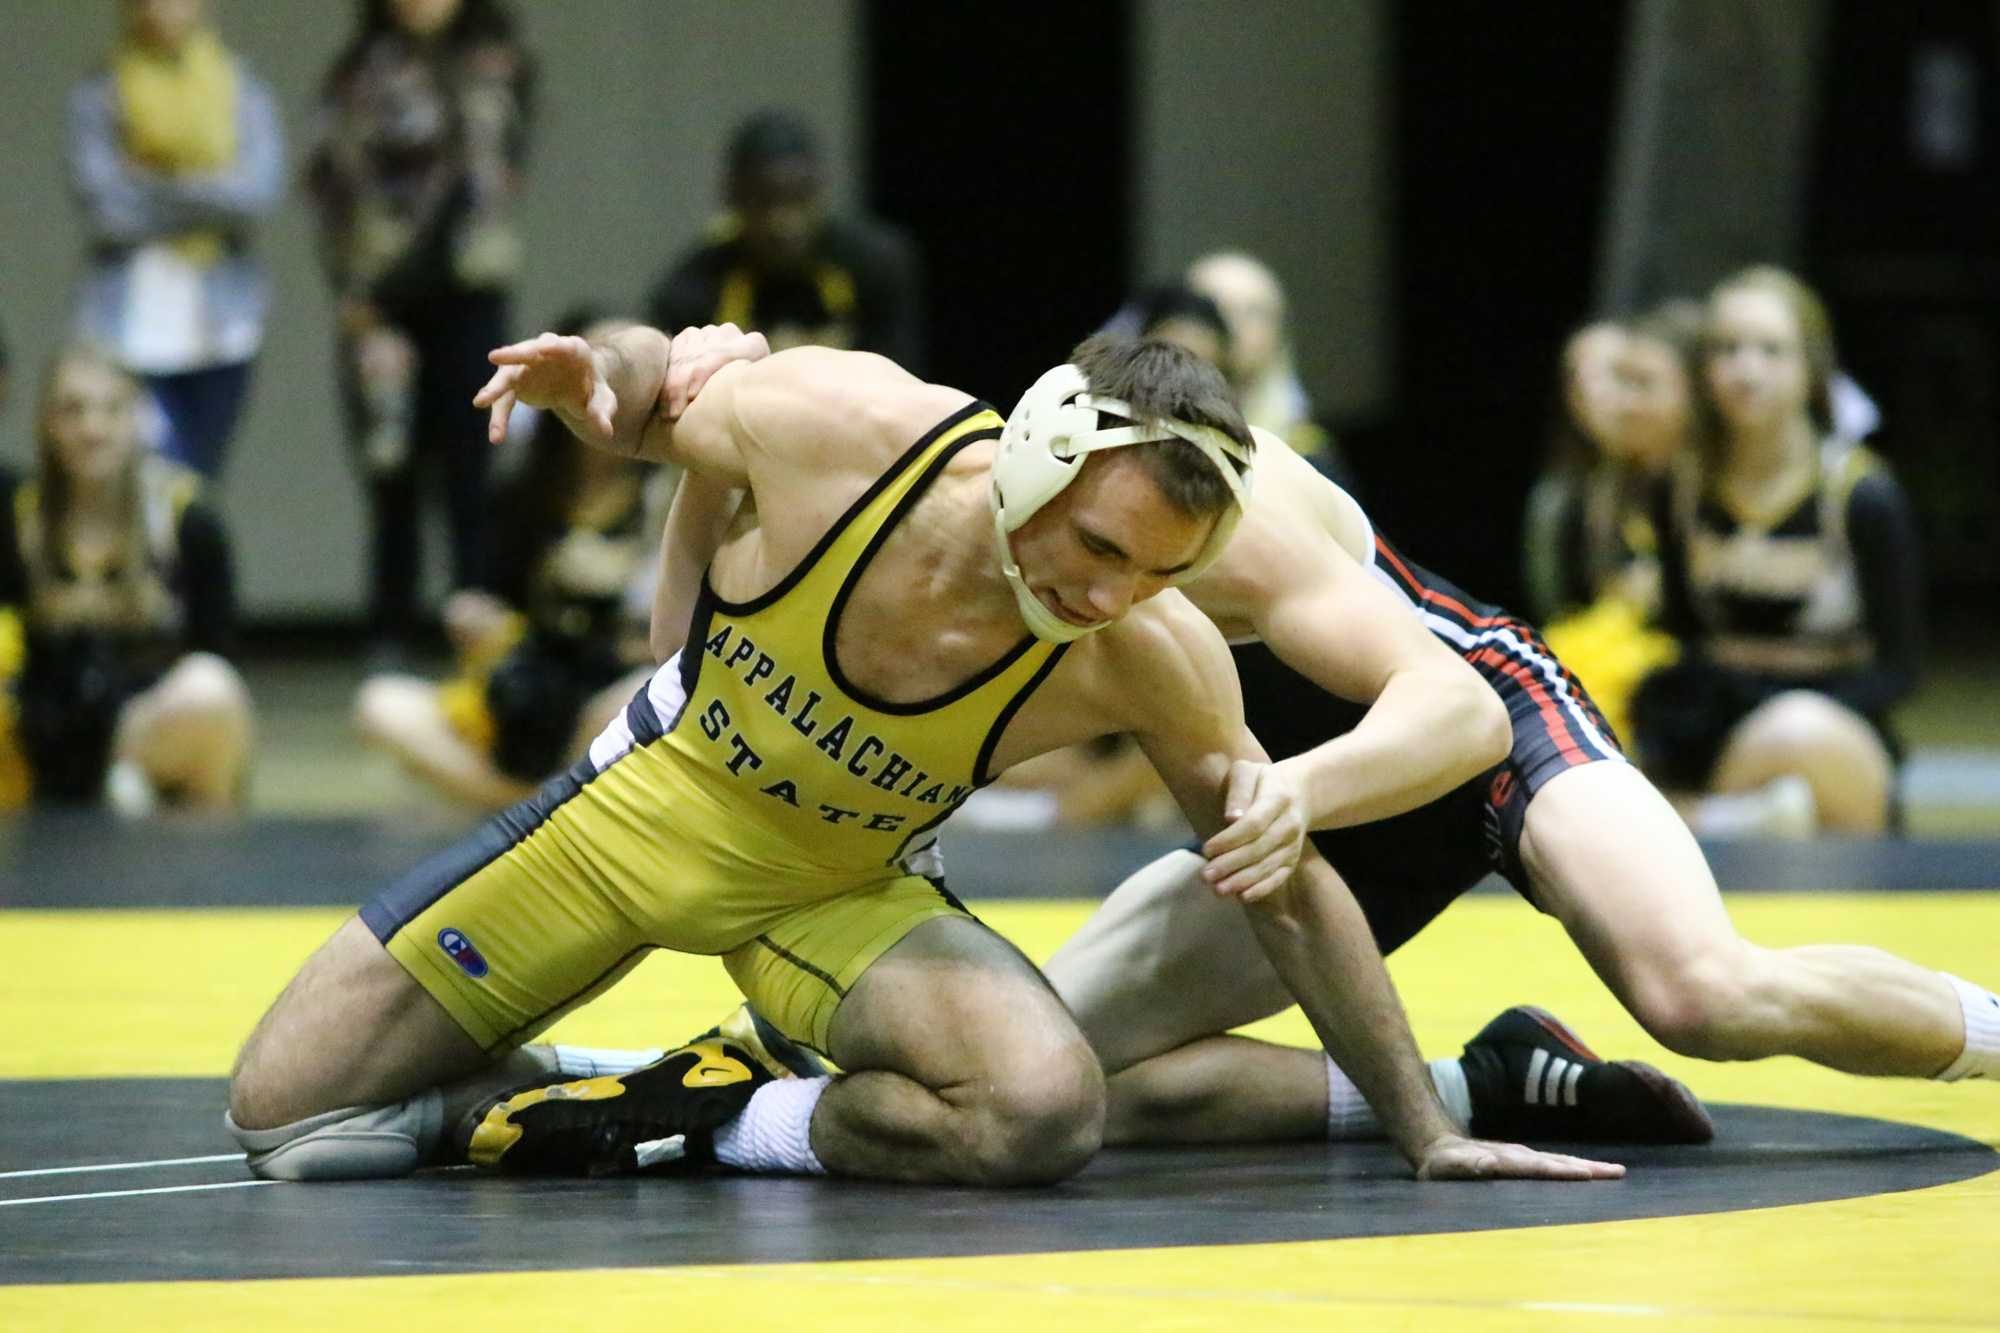 Vito Pasone wrestles in a match against SIUE on January 10. Photo courtesy Appalachian State Athletics.